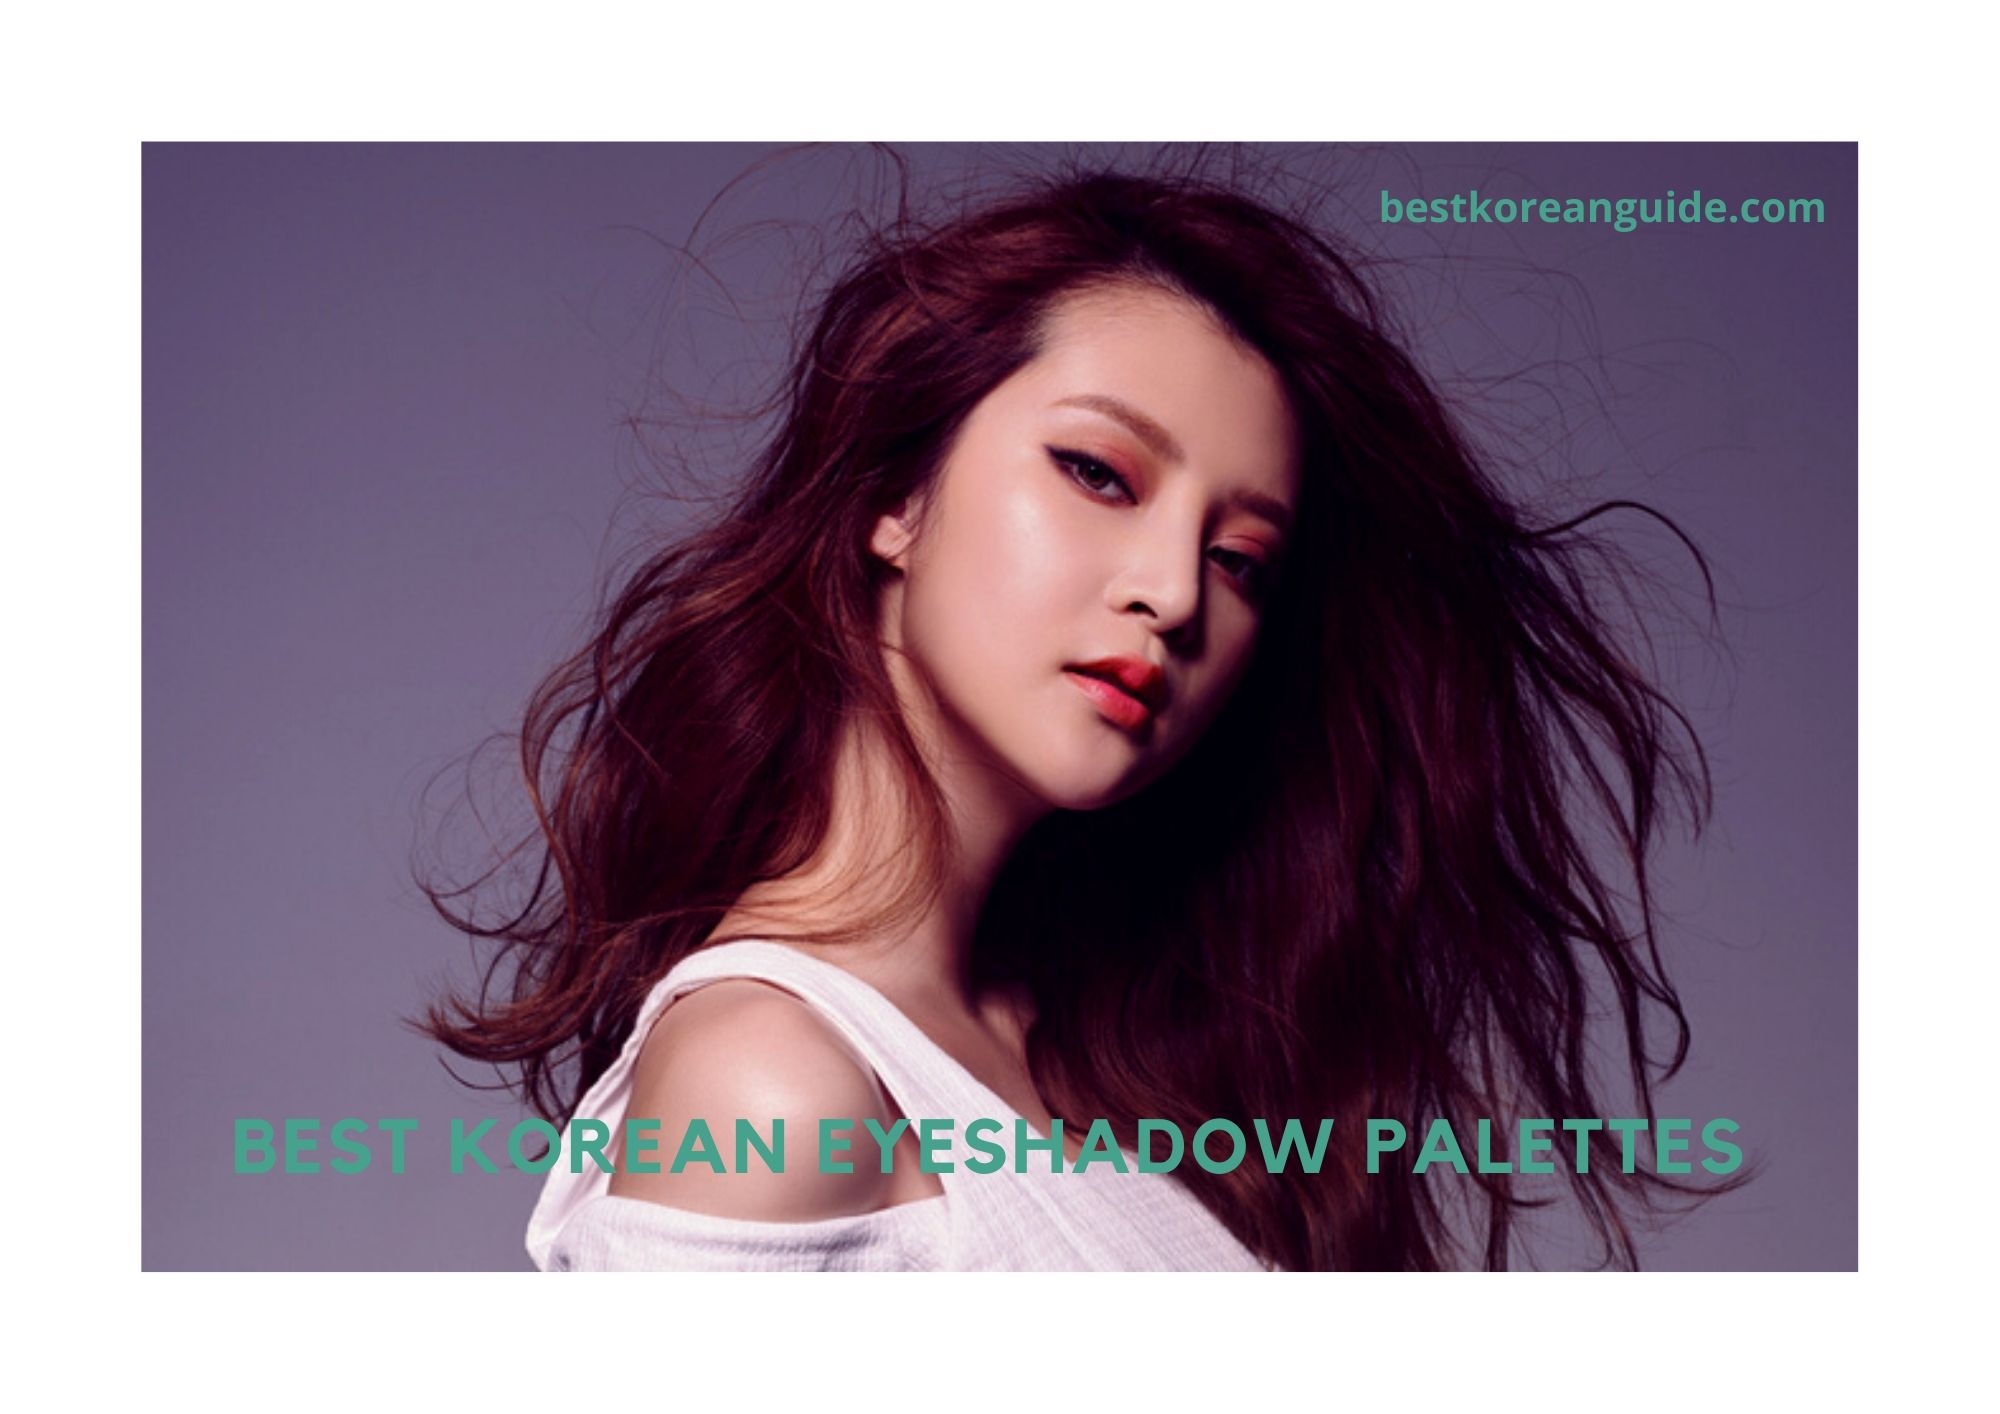 Best korean eyeshadow palettes